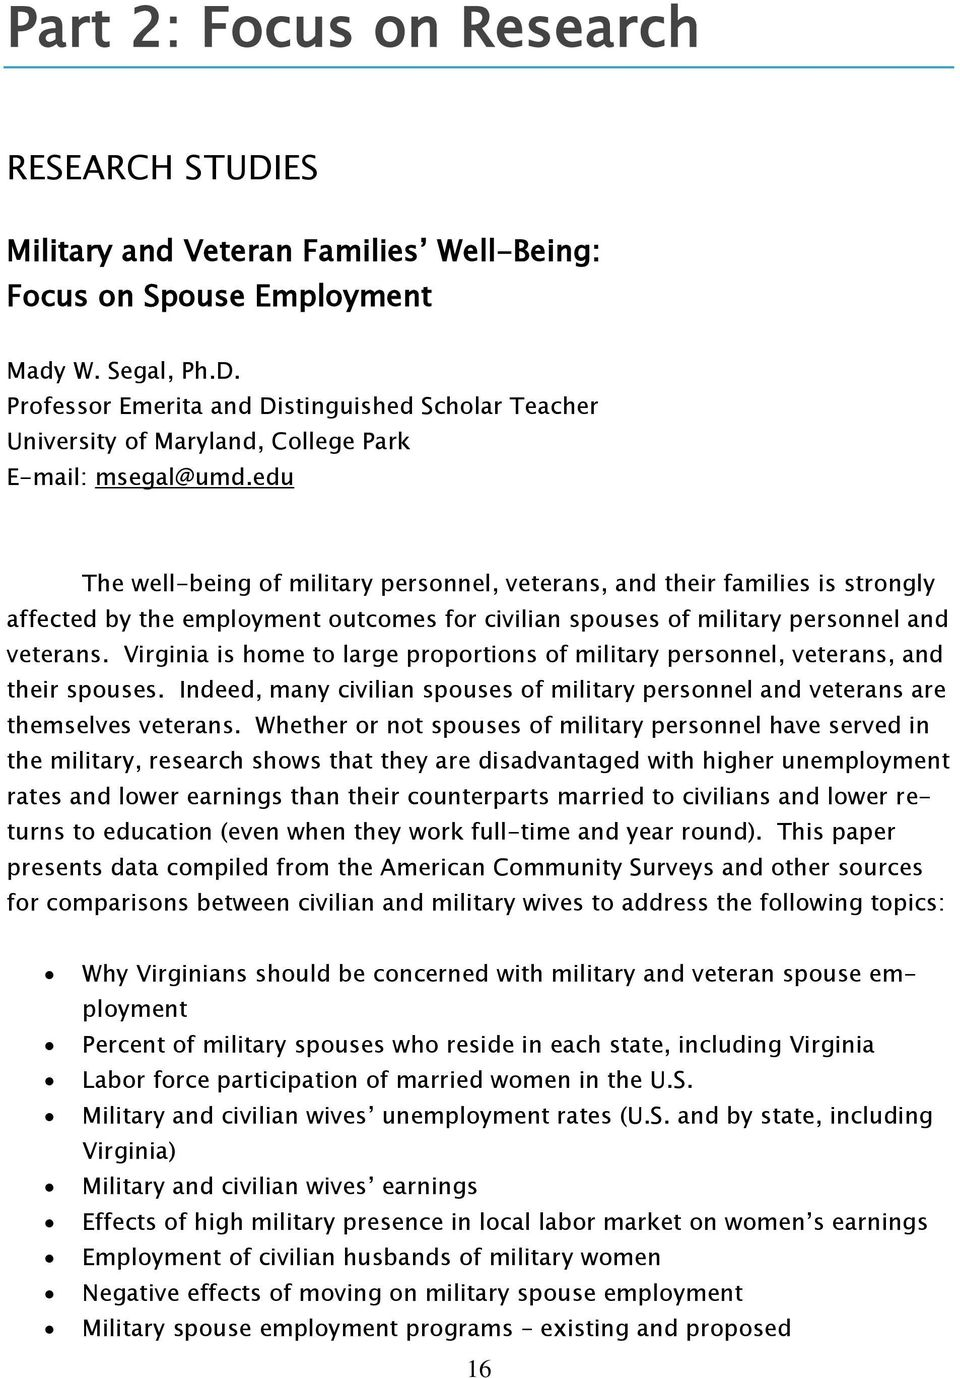 Virginia is home to large proportions of military personnel, veterans, and their spouses. Indeed, many civilian spouses of military personnel and veterans are themselves veterans.